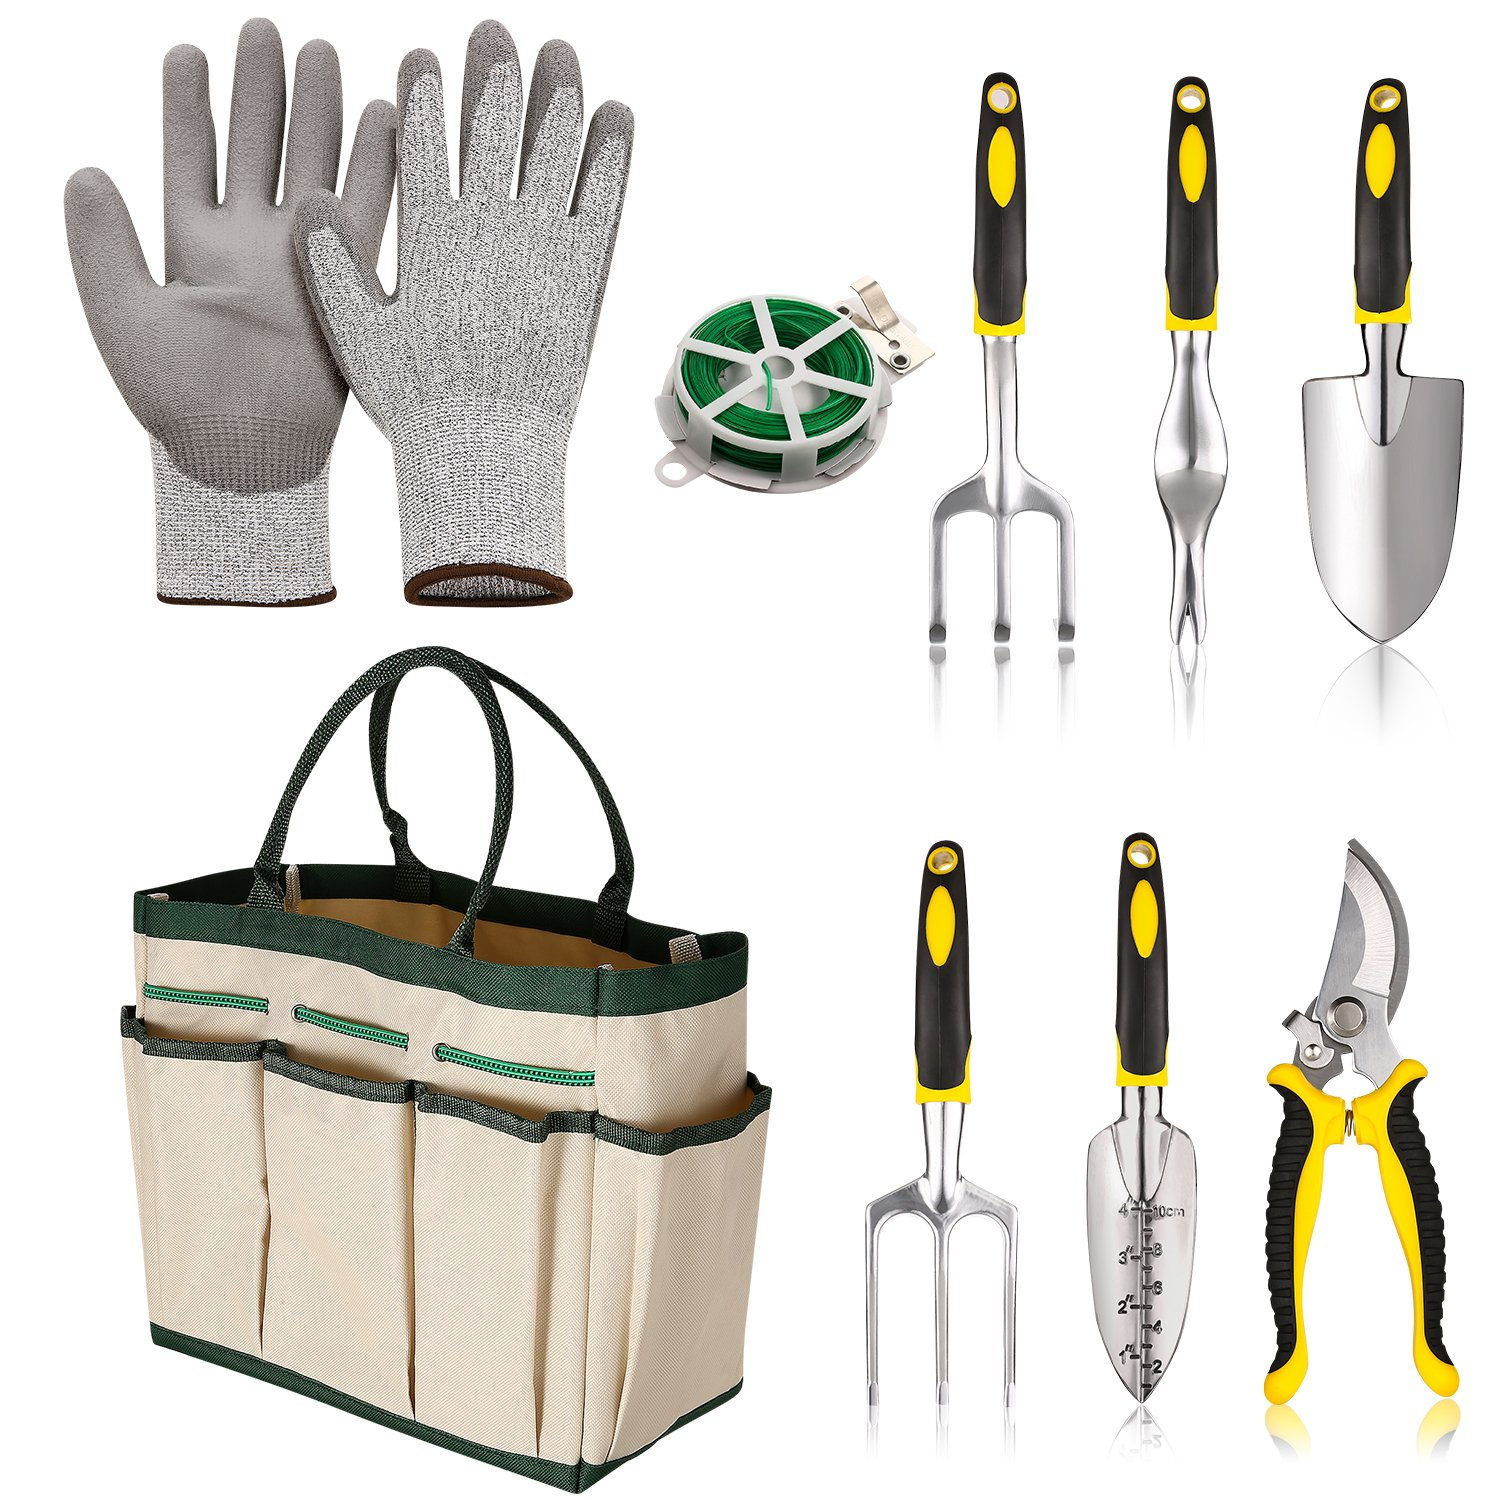 Moroly 9 Piece Garden Tool Set for Digging Planting Gardening Kit with 6 Heavy Duty Cast-aluminum Heads,Cut-resistant Gloves, Plant Twist Tie and Storage Bag (White)